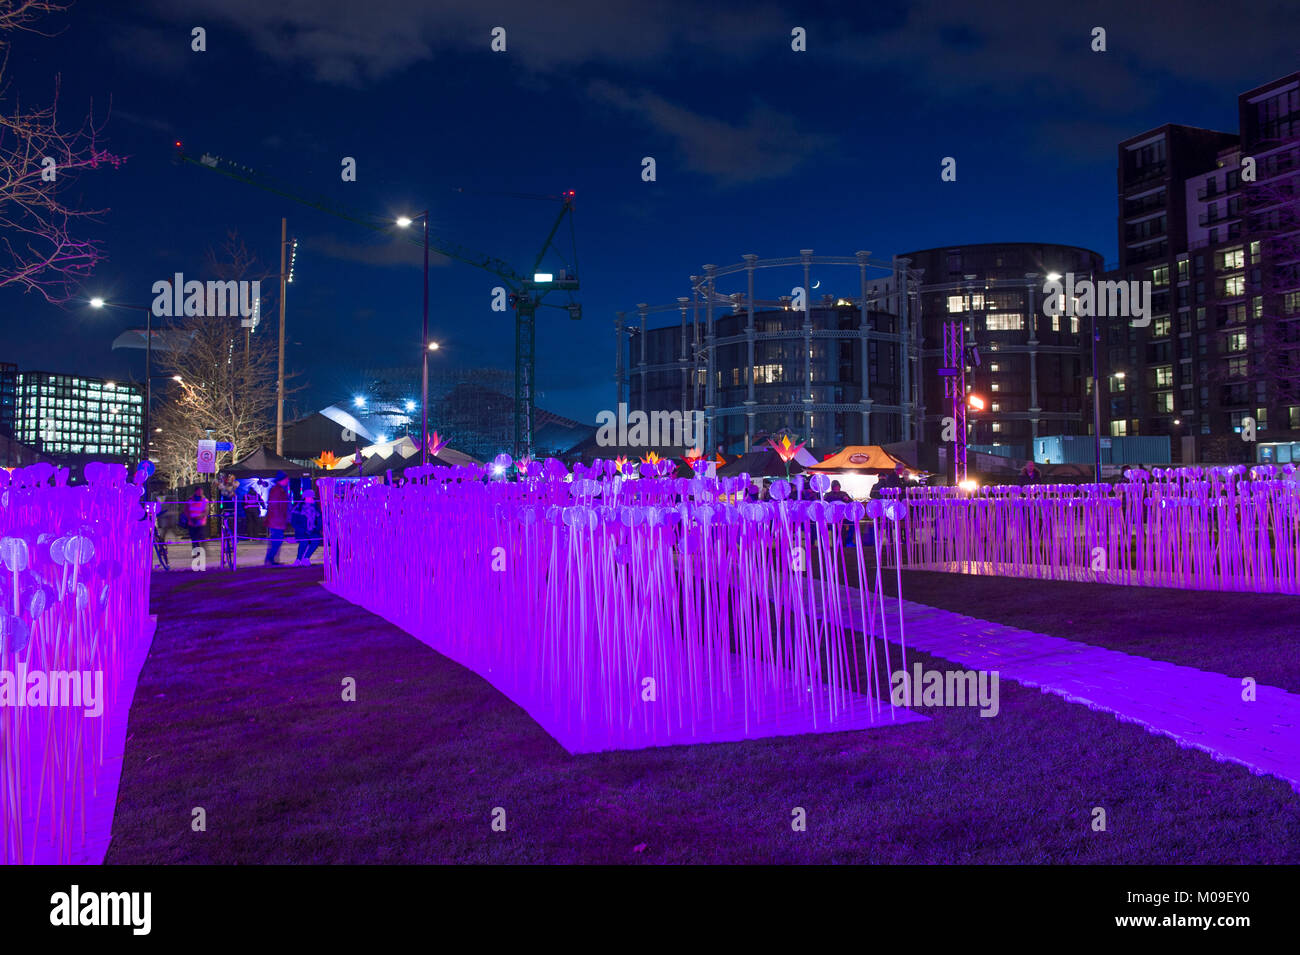 London, UK. 19th Jan, 2018. Locations around Kings Cross in London feature spectacular light displays created by - Stock Image